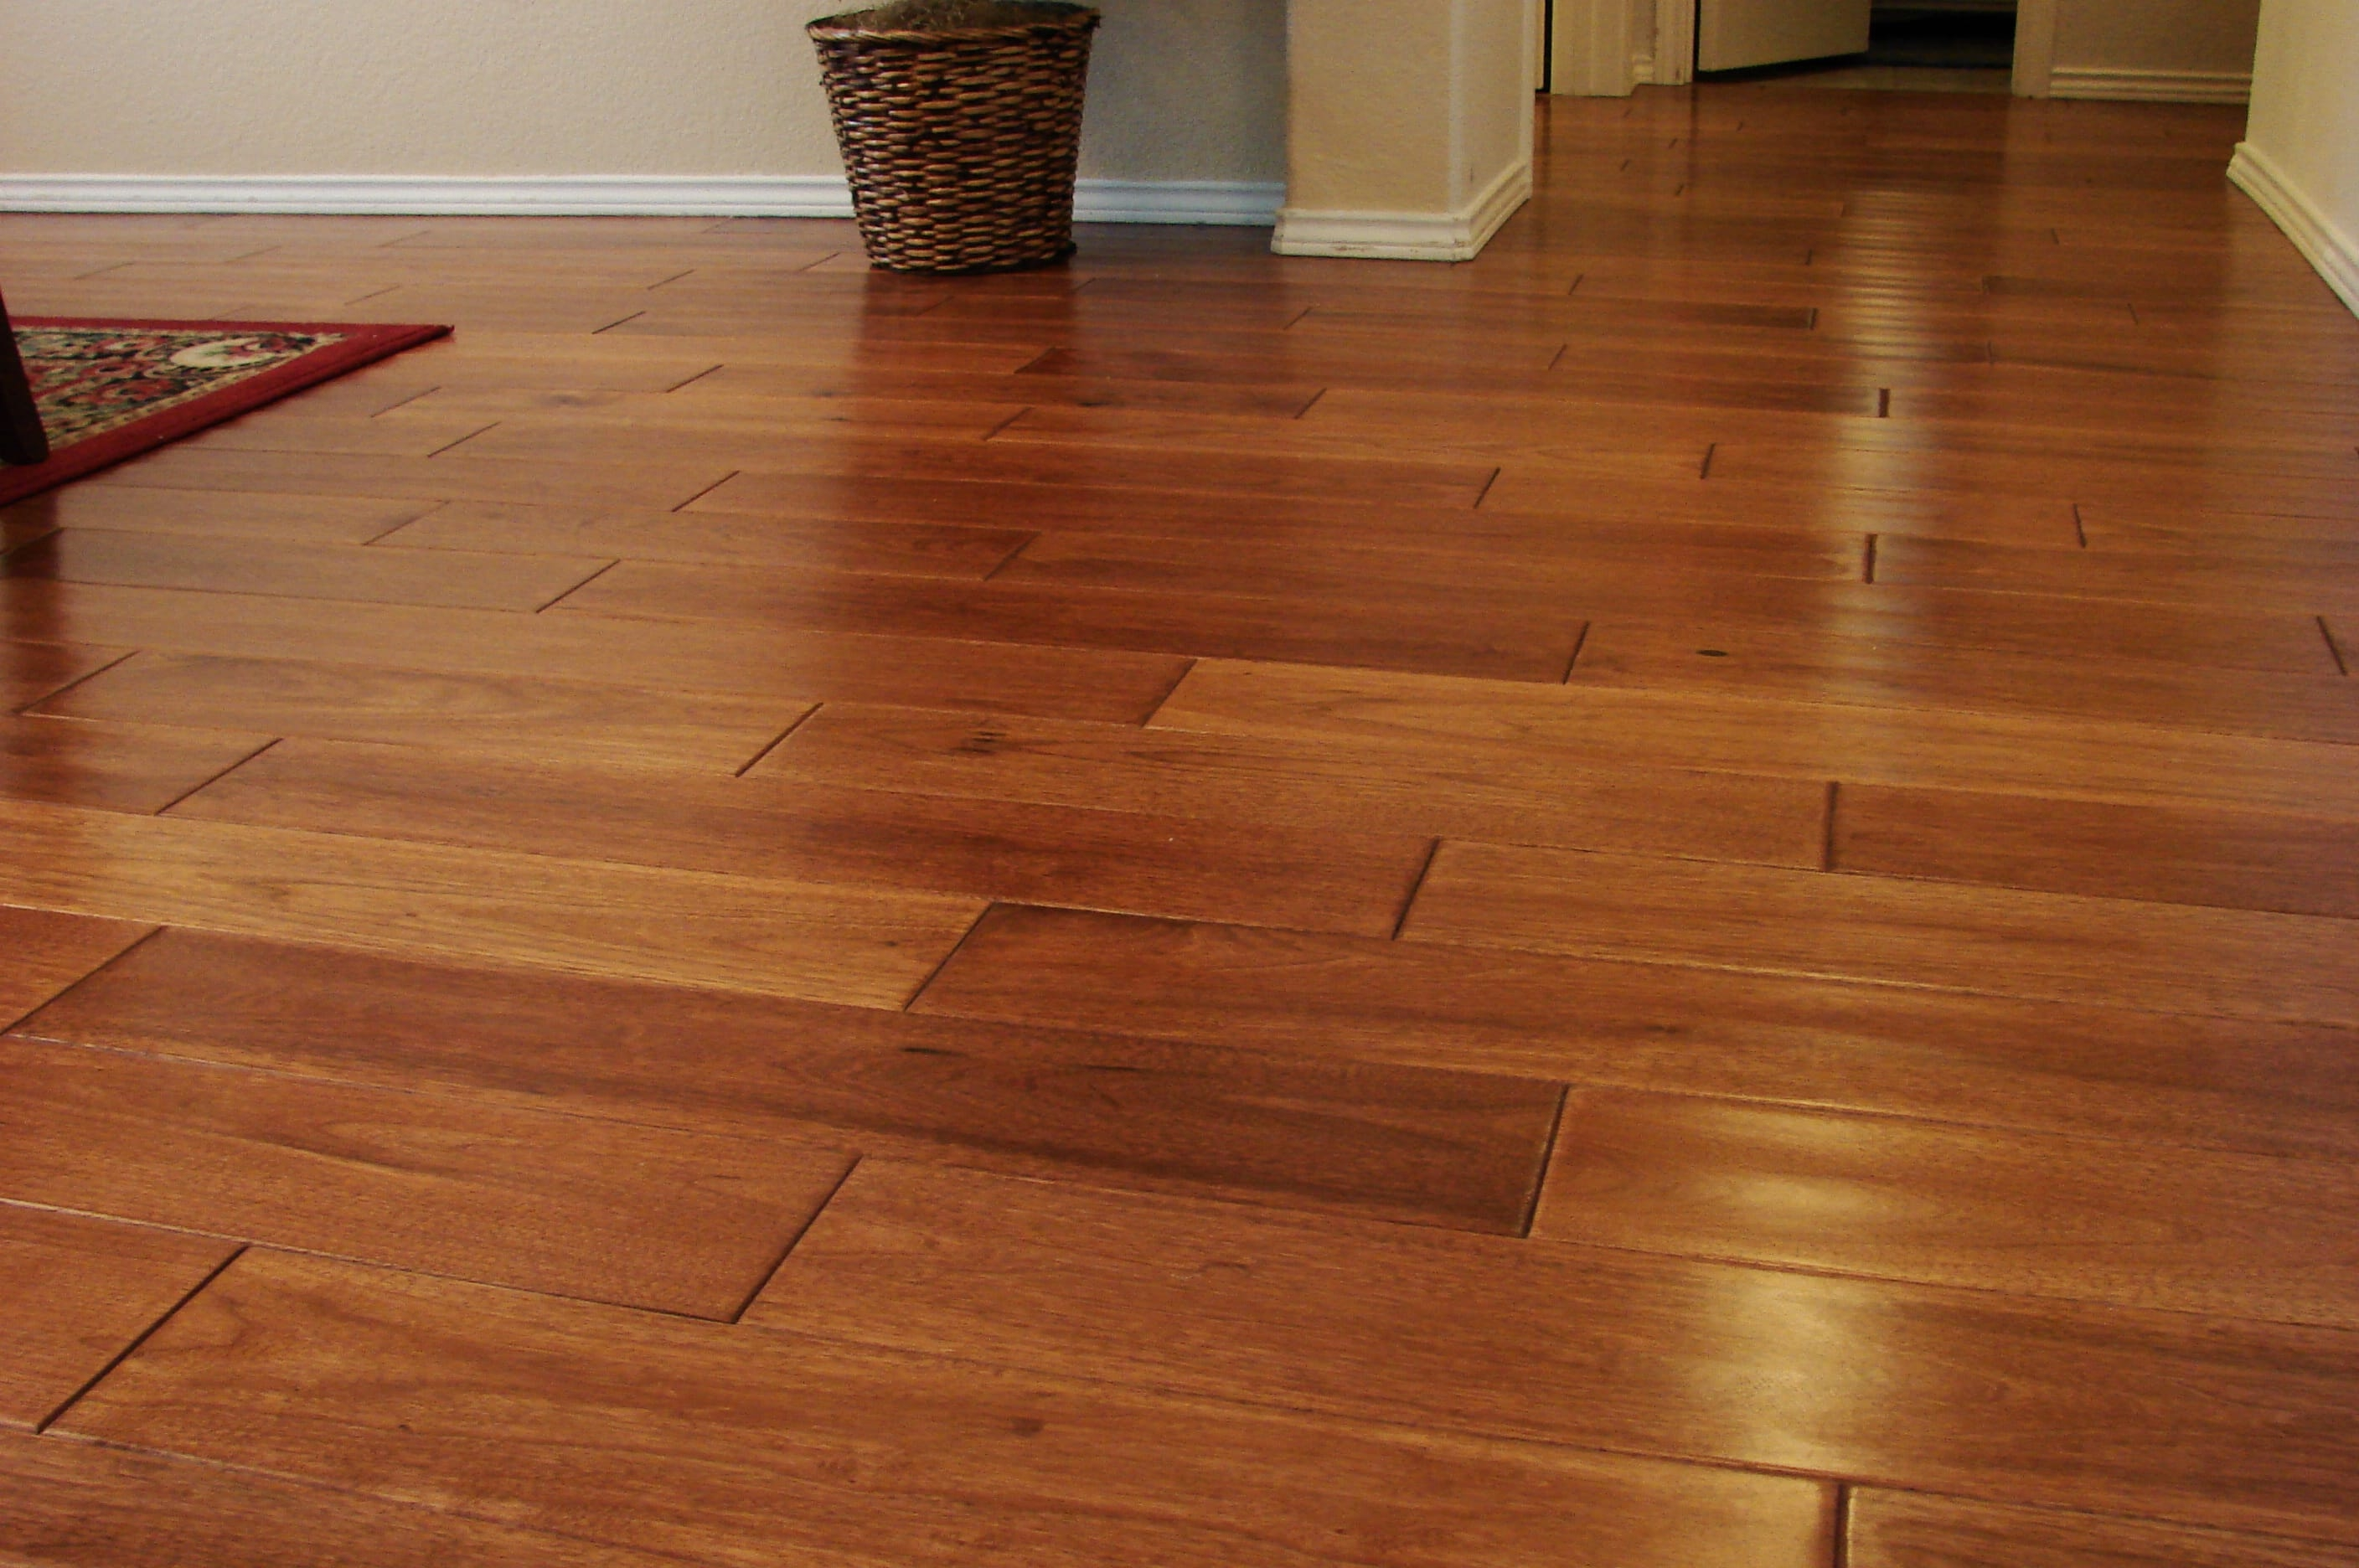 Solid Wooden Floor Adhesive